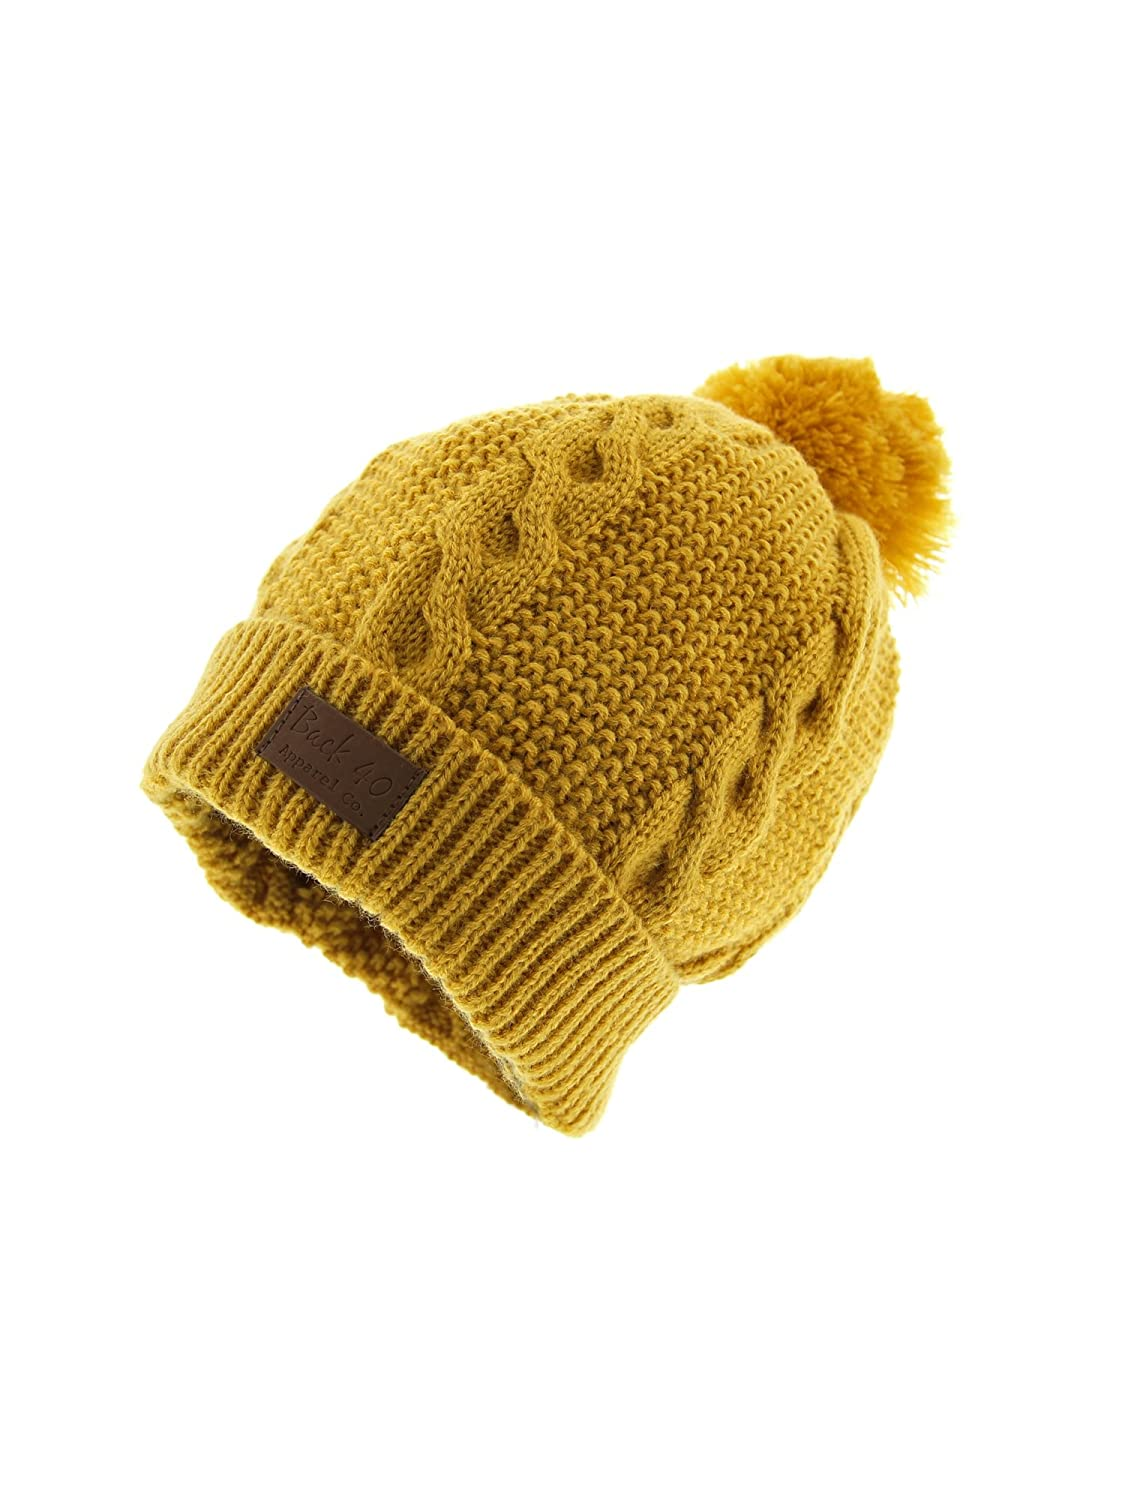 e557fe0999dc9 Cable Pom Pom Cuffed Beanie Unisex - Yellow Thick and Warm Knit Winter Hat  Skull Cap by Back 40 at Amazon Men s Clothing store